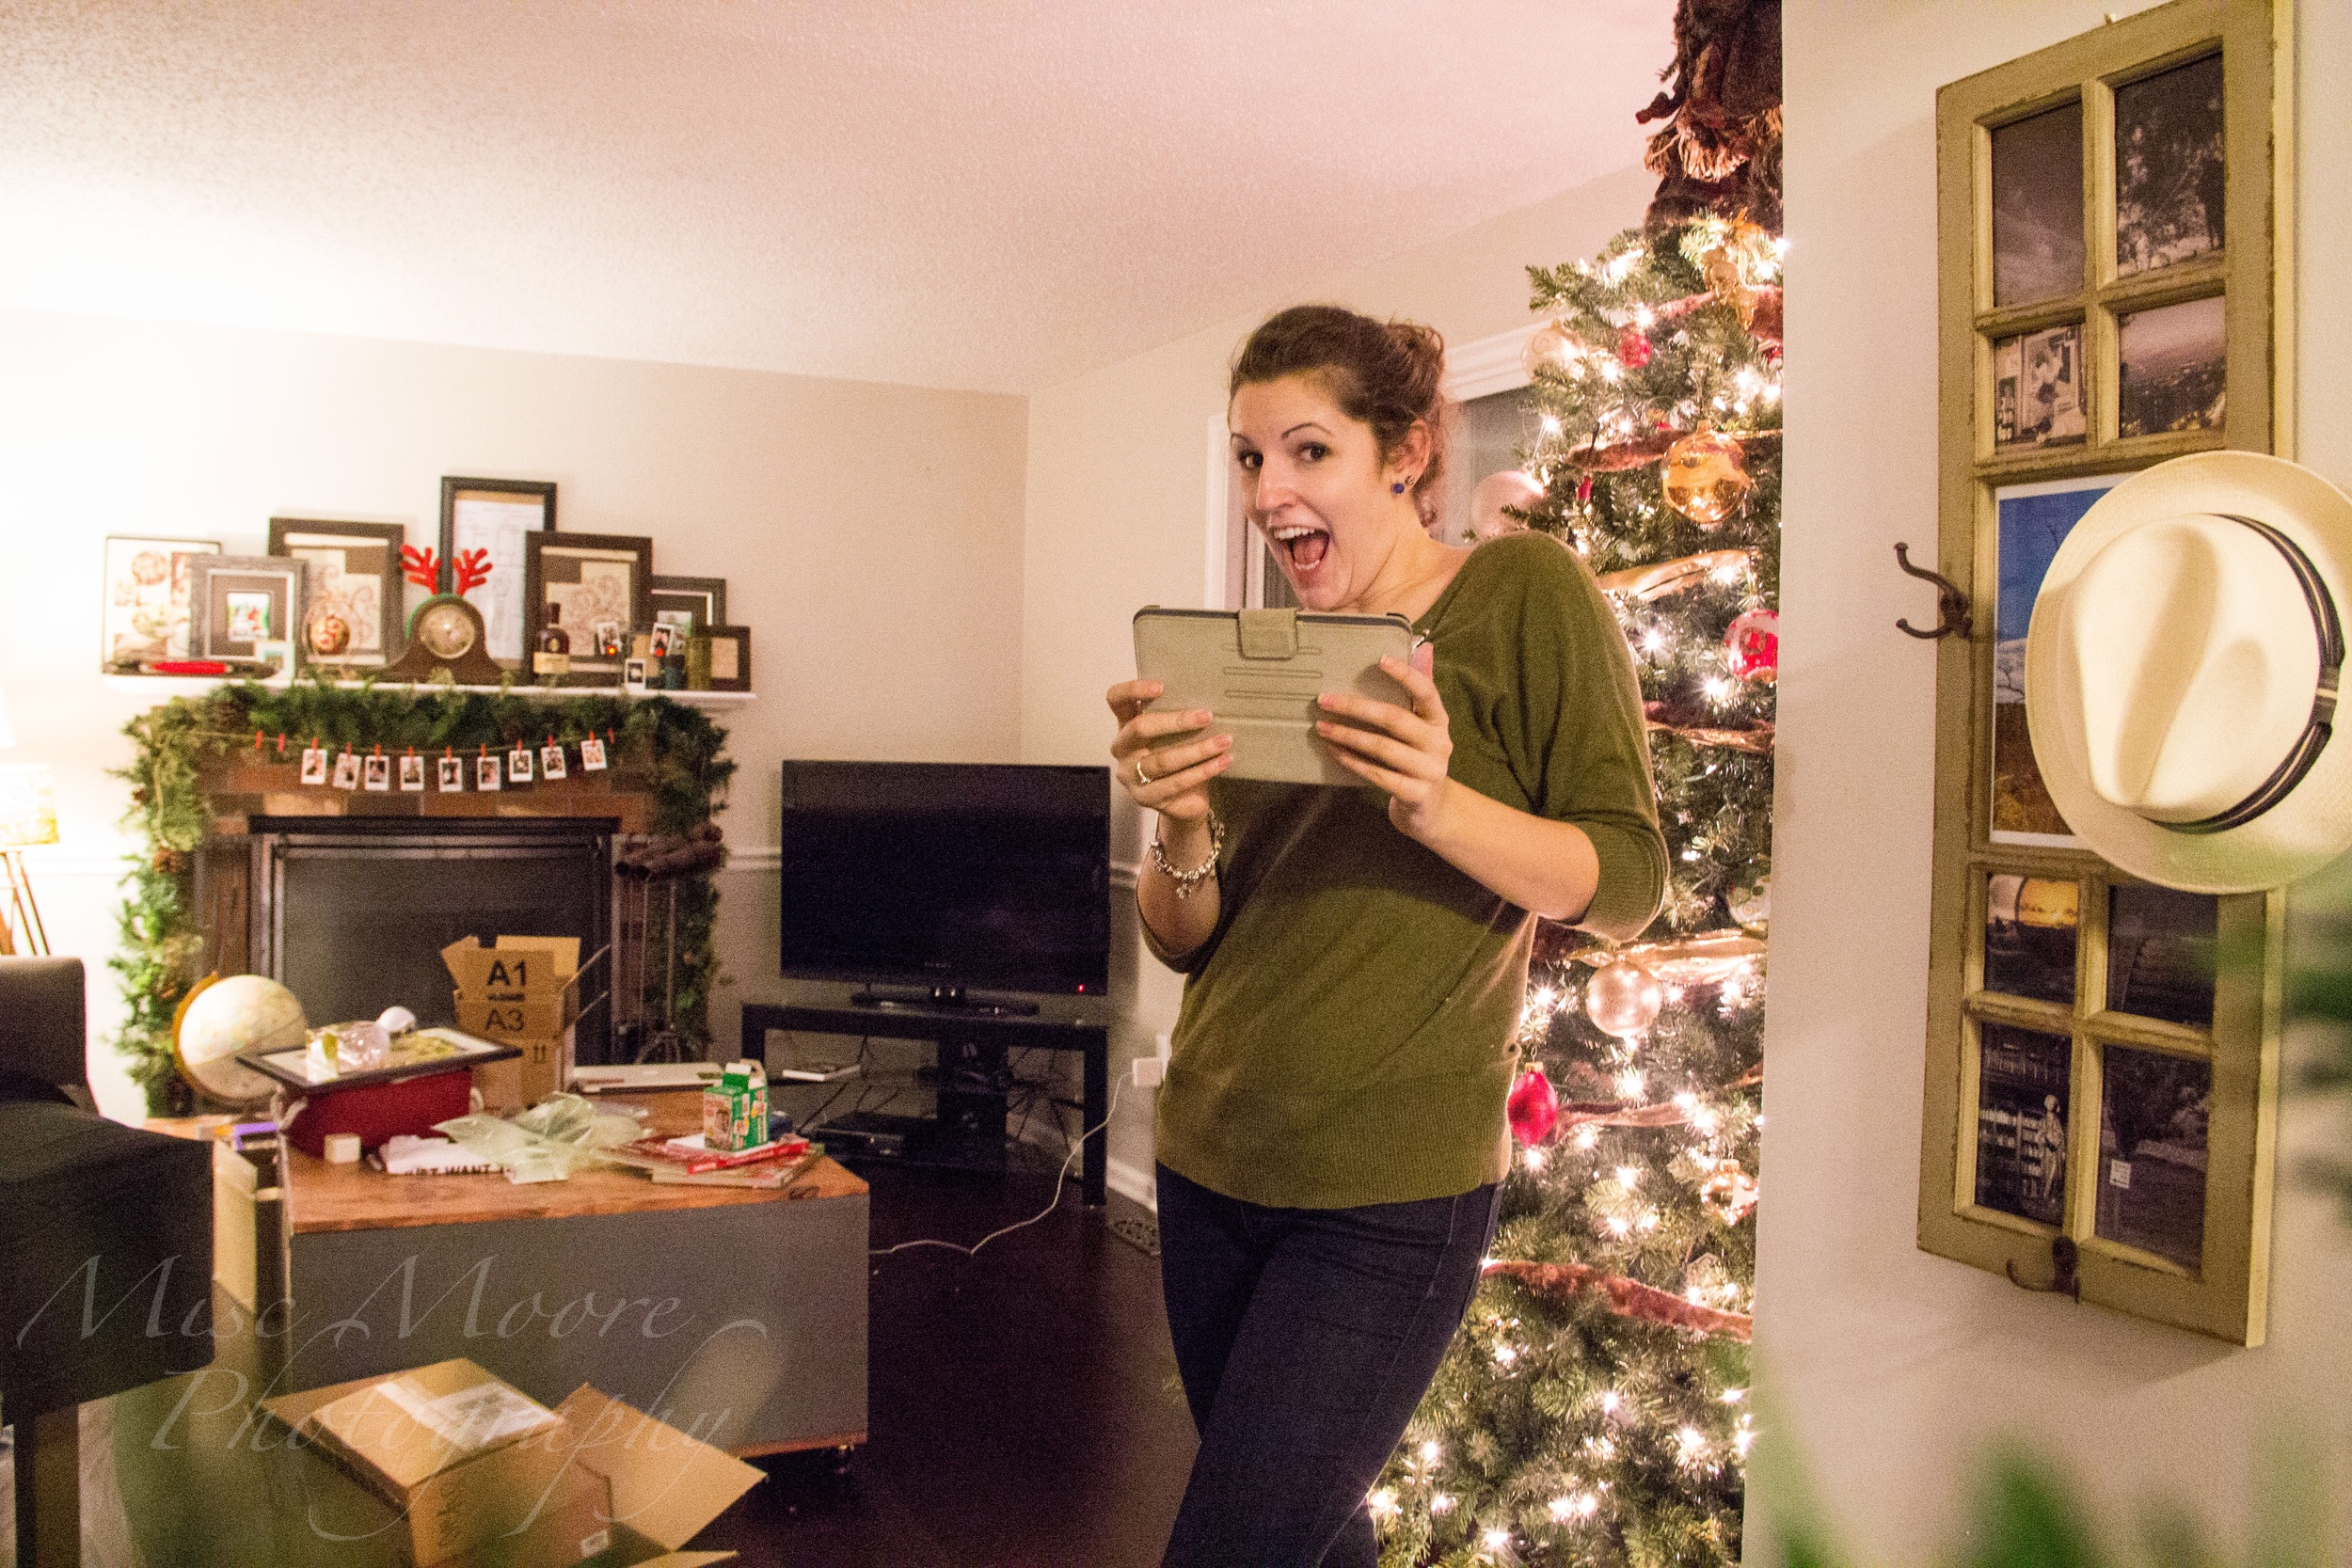 Trying out my new Weye Feye on Christmas night -- obviously a little excited!